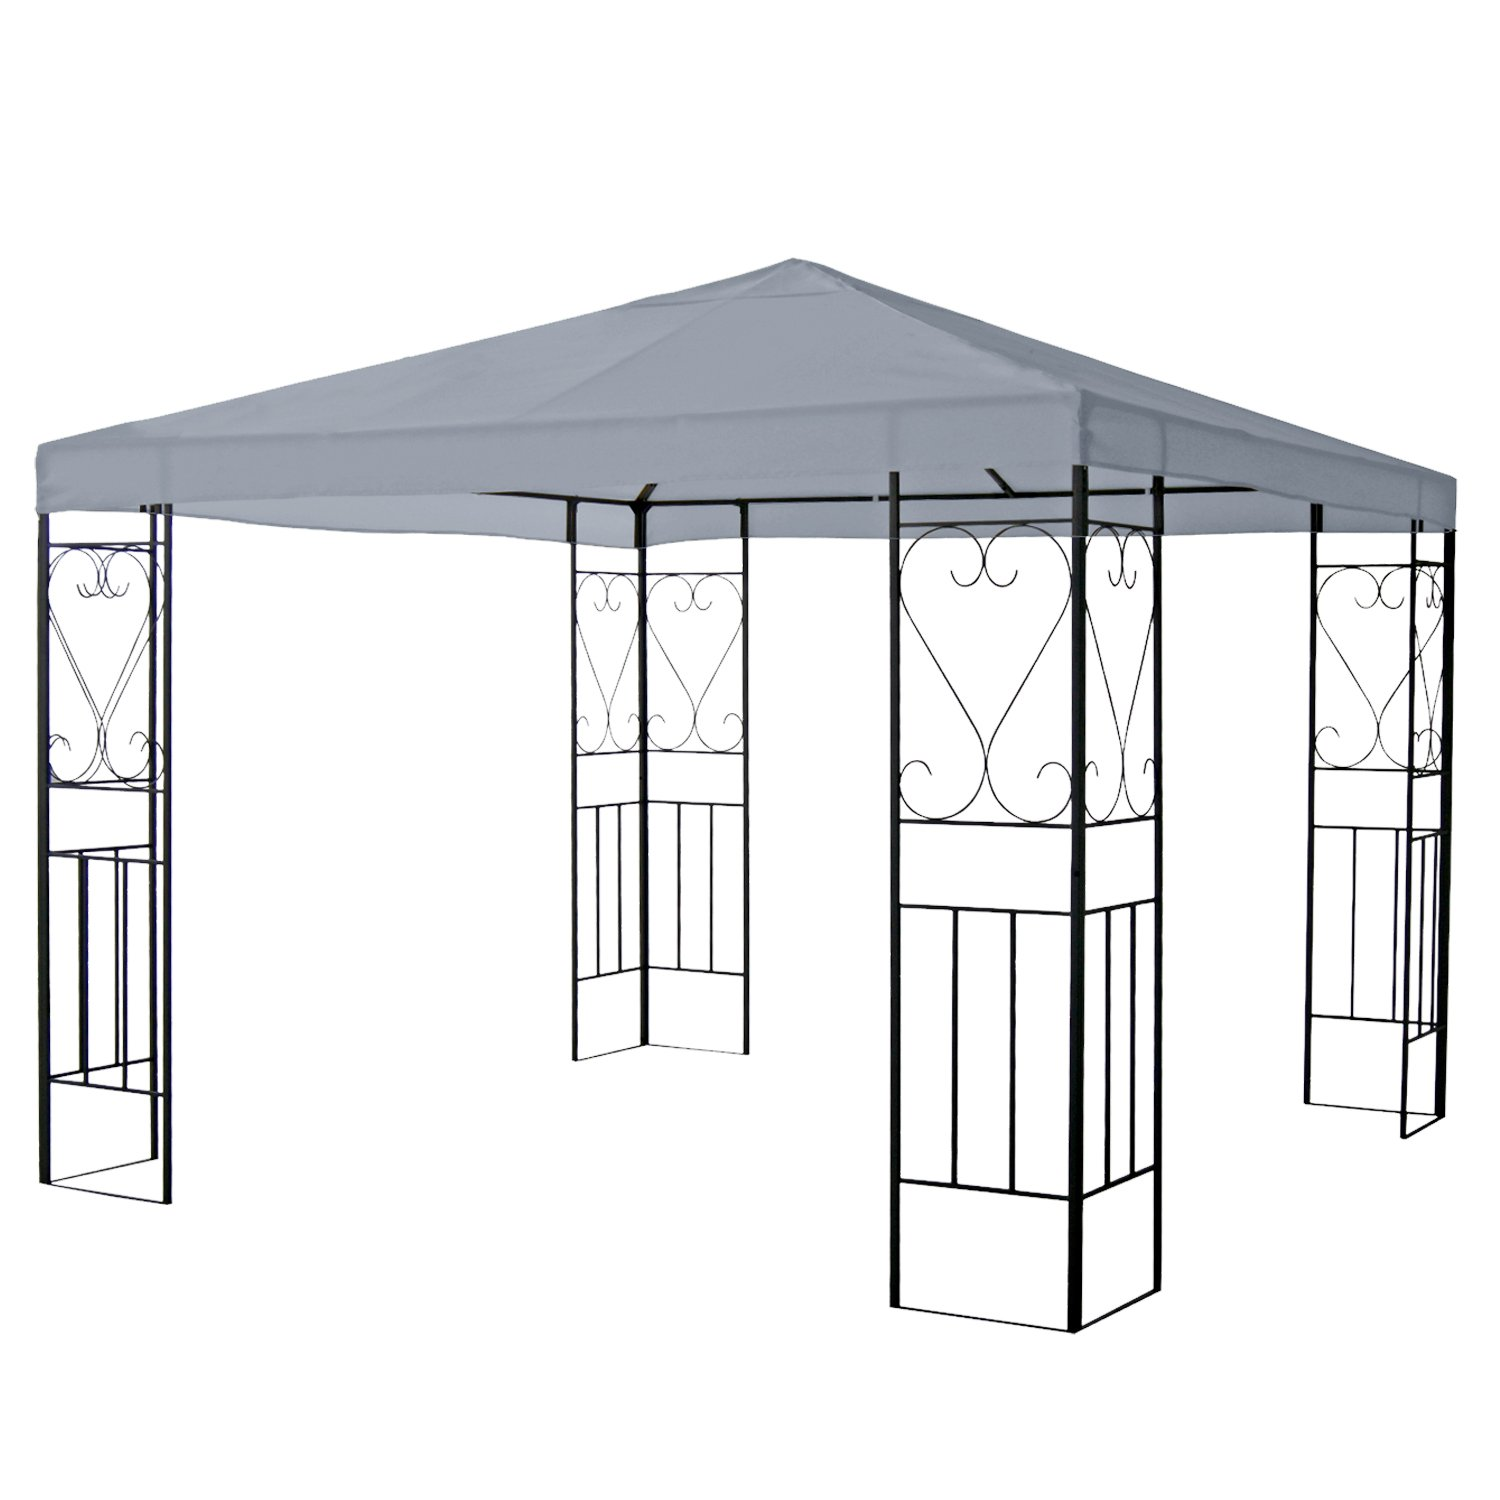 Greenbay Ivory Garden Gazebo Top Cover Roof Replacement Tent Canopy Fabric Sun Shade Cover 1-Tier (Replacement Fabric Only, Frame Not Included) Manufactured for Greenbay